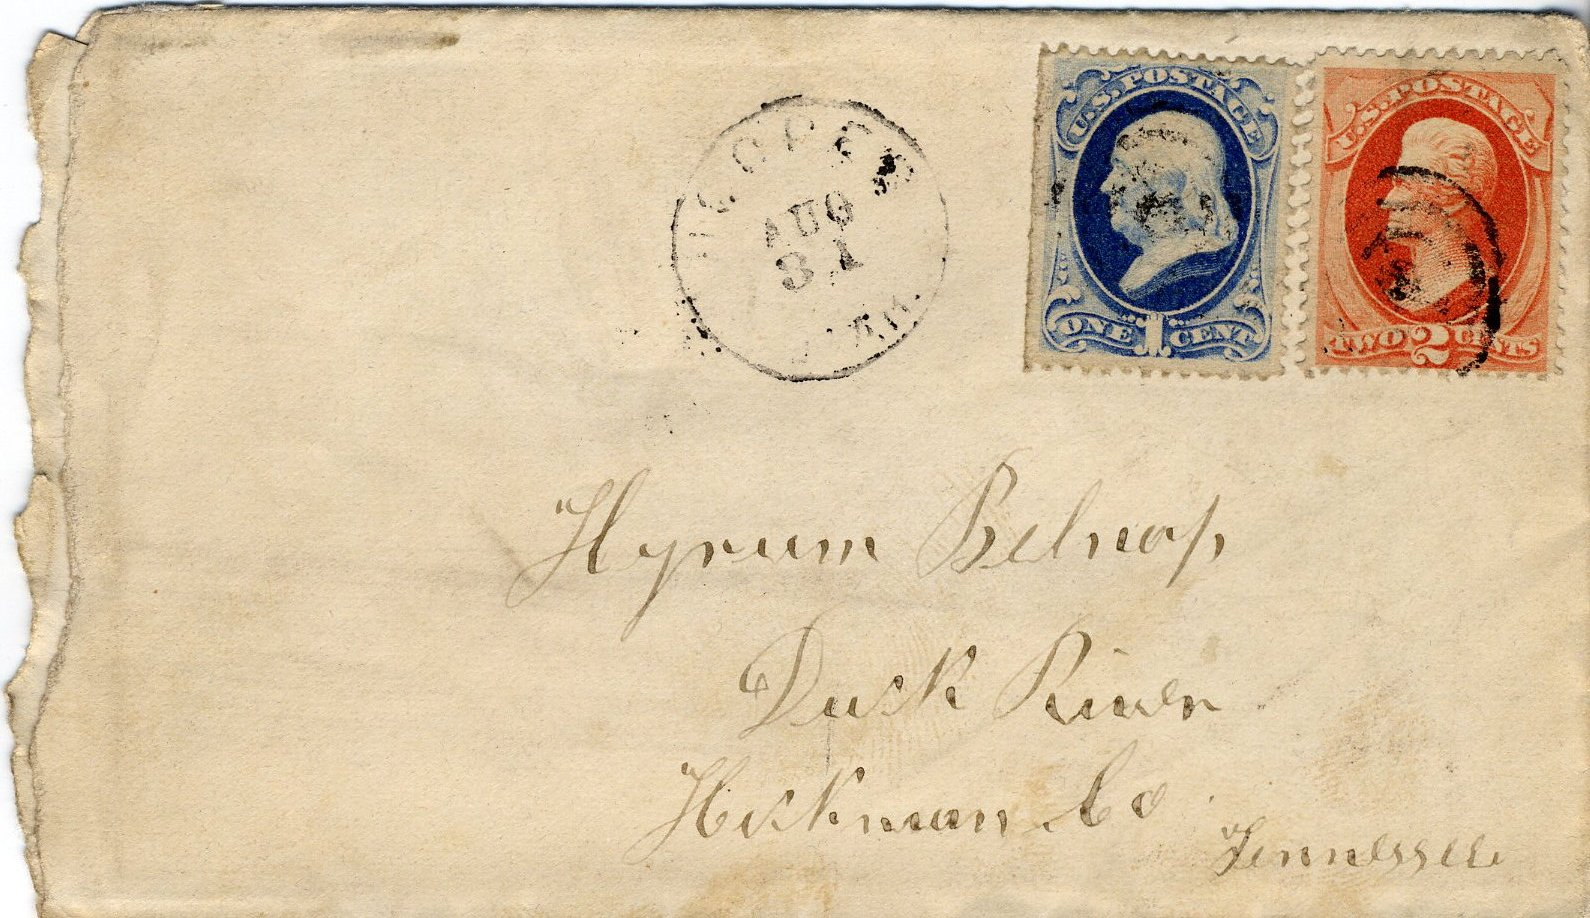 Letter Envelope This letter is based on the